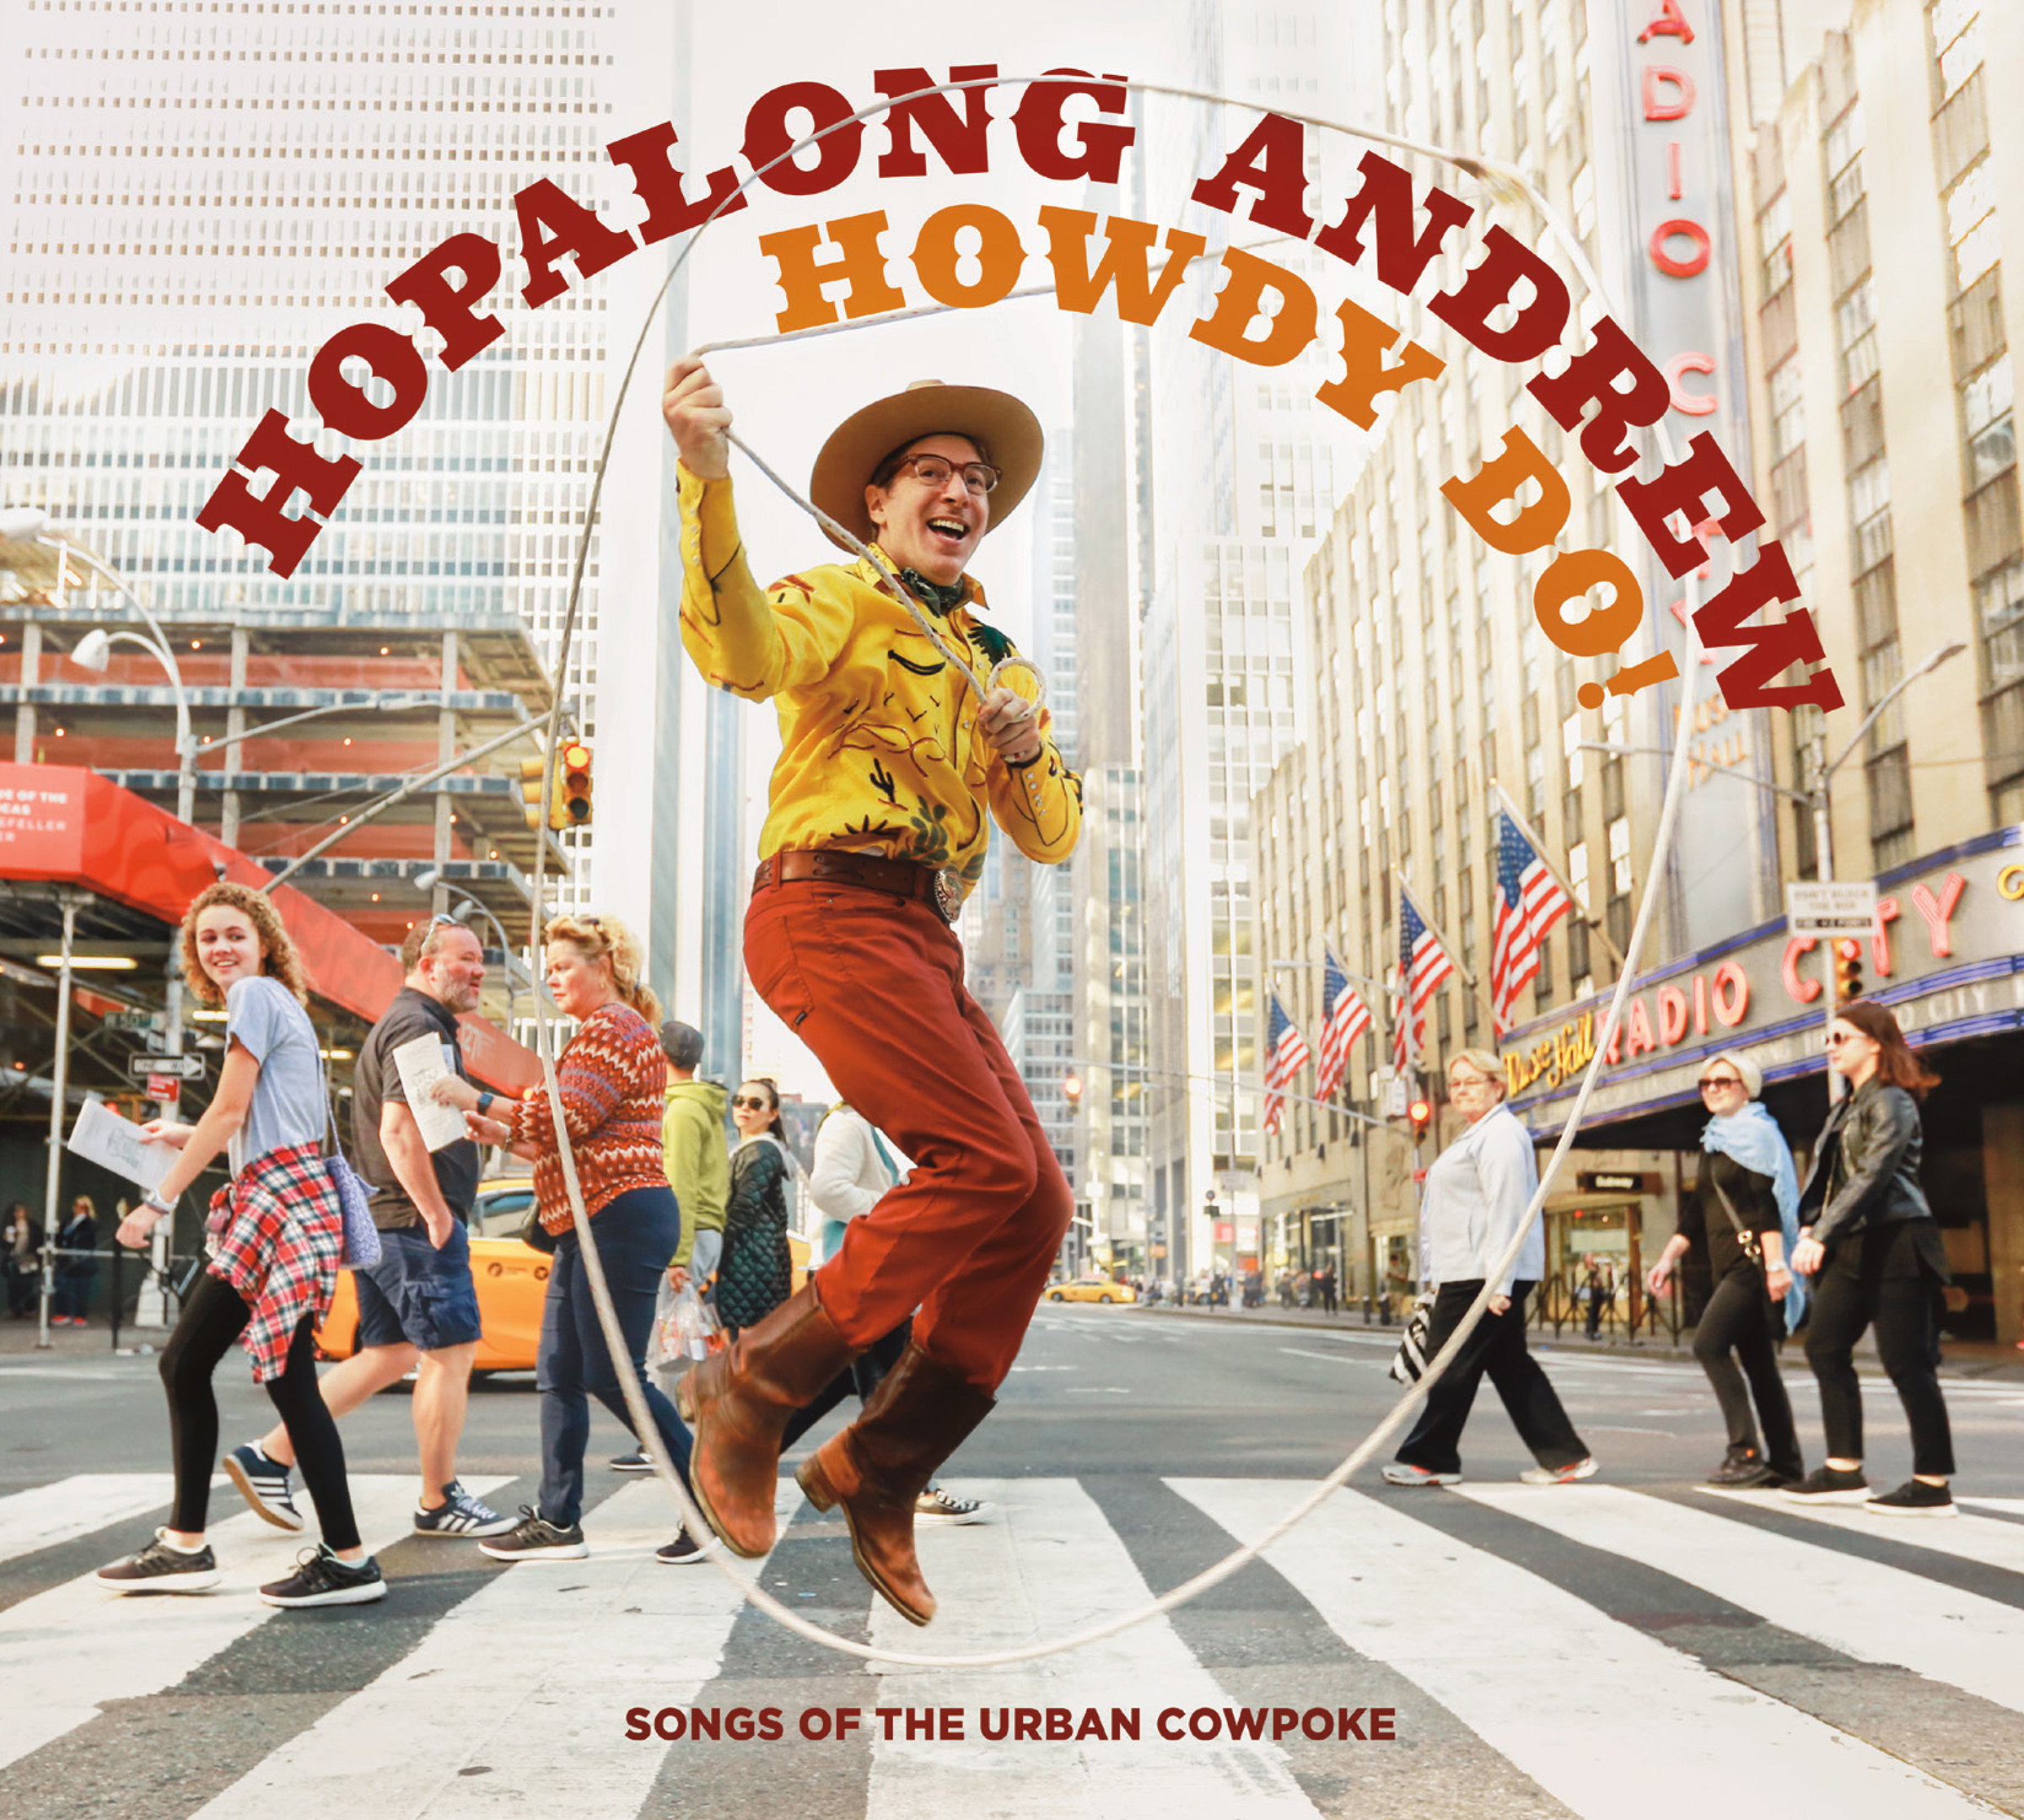 Howdy Do! Songs of the Urban Cowpoke